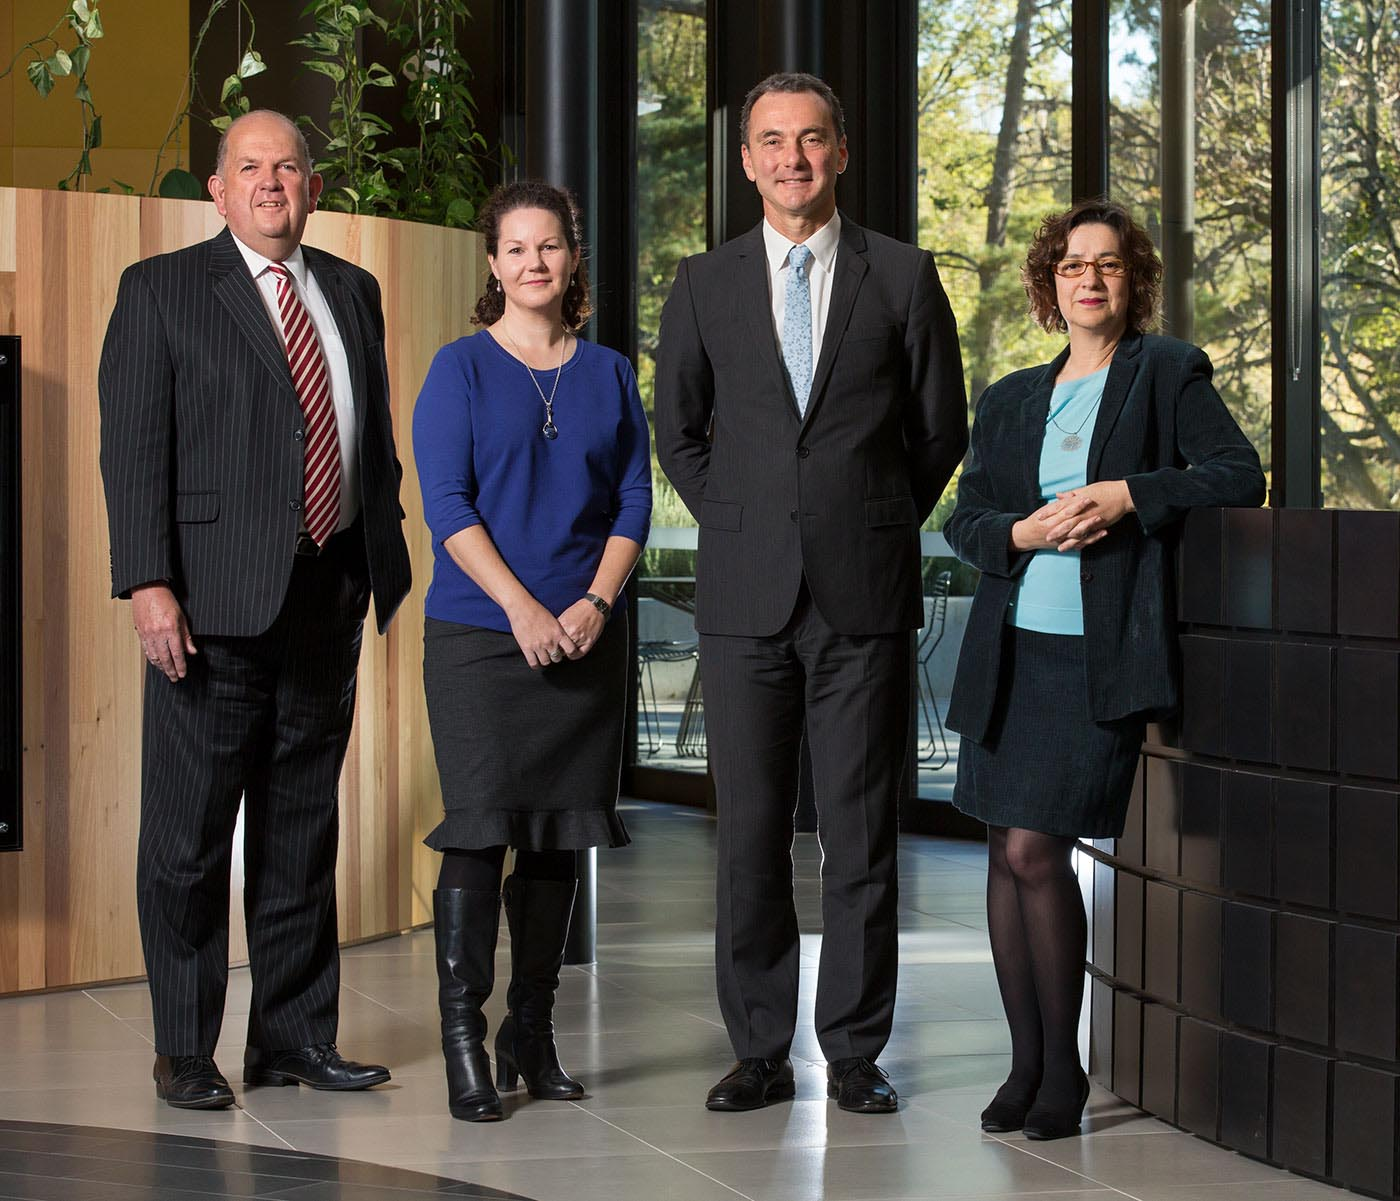 The National Museum of Australia's executive management group (left to right): Graham Smith, Rebecca Coronel, Mathew Trinca and Helen Kon.